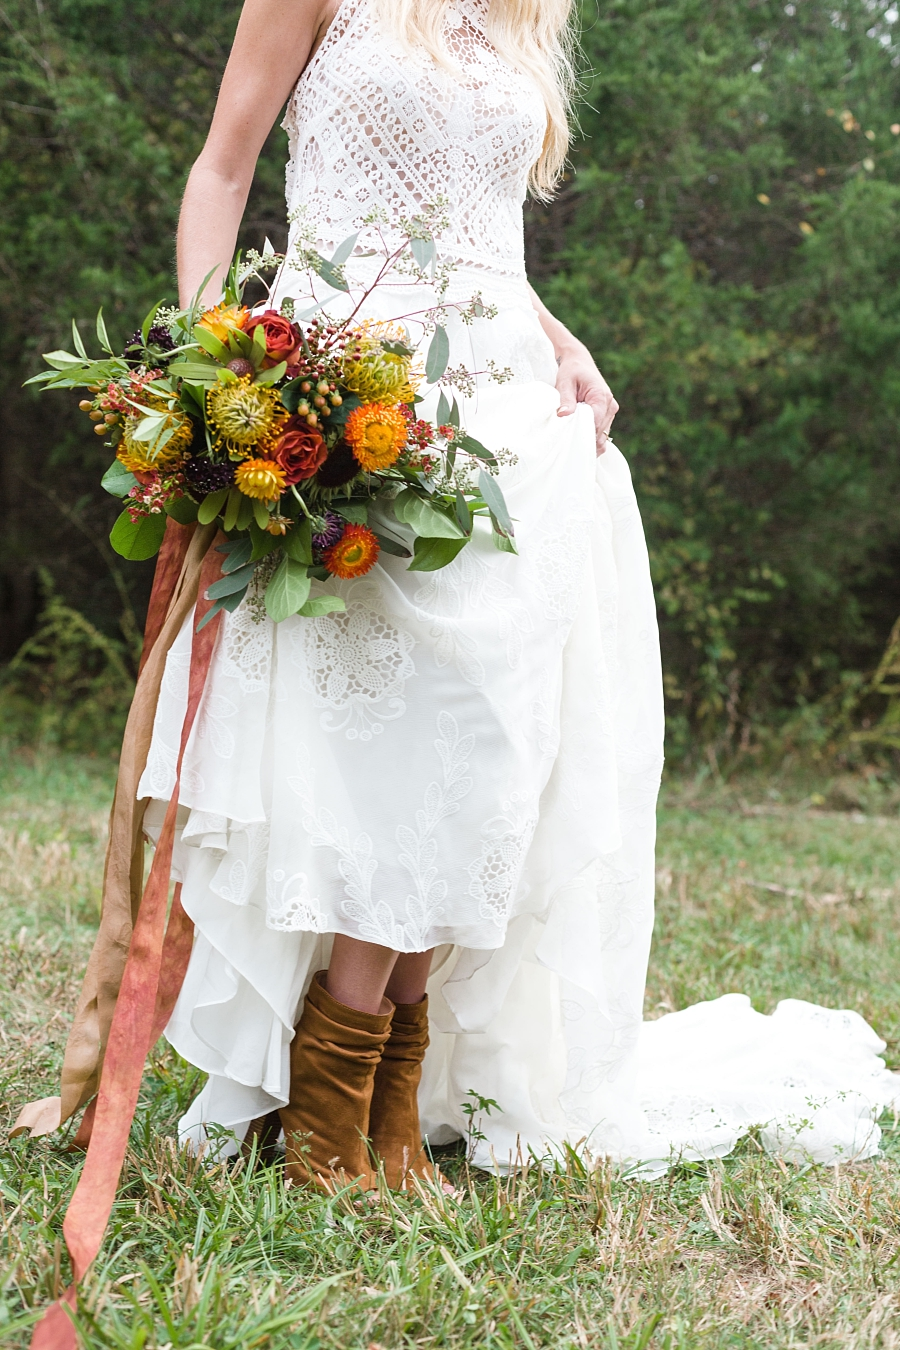 Stacy-Anderson-Photography-Cedarwood-Weddings-Nashville-Destination-Wedding-Photographer_0062.jpg